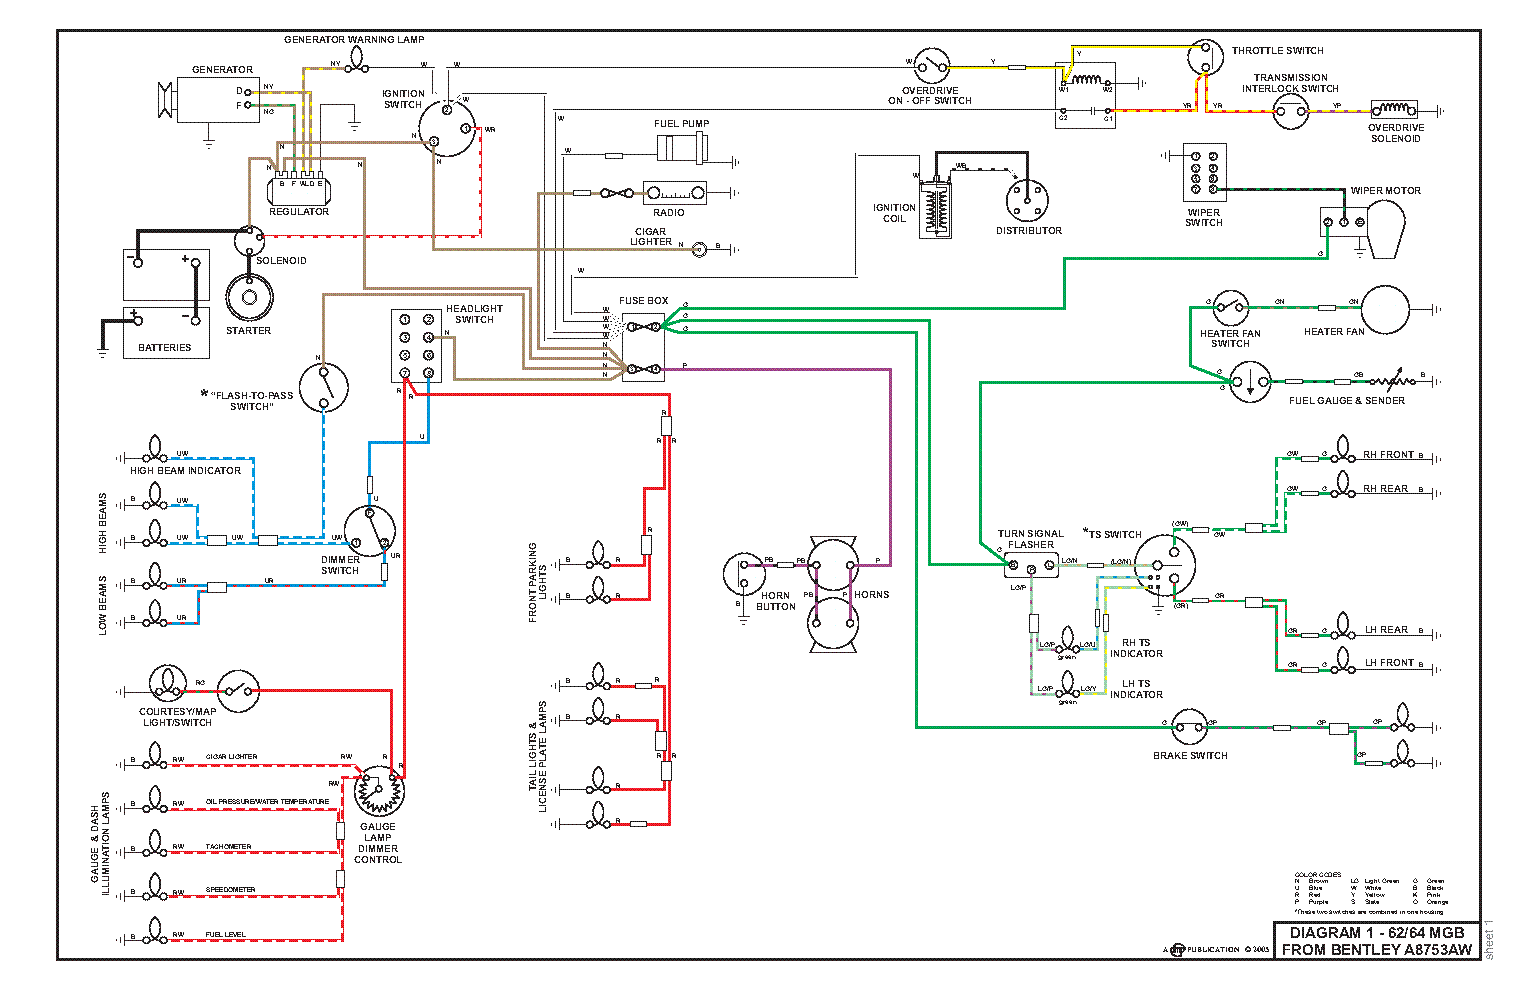 bentley_mg_b_car_wiring_diagrams.pdf_1 bentley mg b car wiring diagrams service manual download pdf wiring diagrams at bayanpartner.co